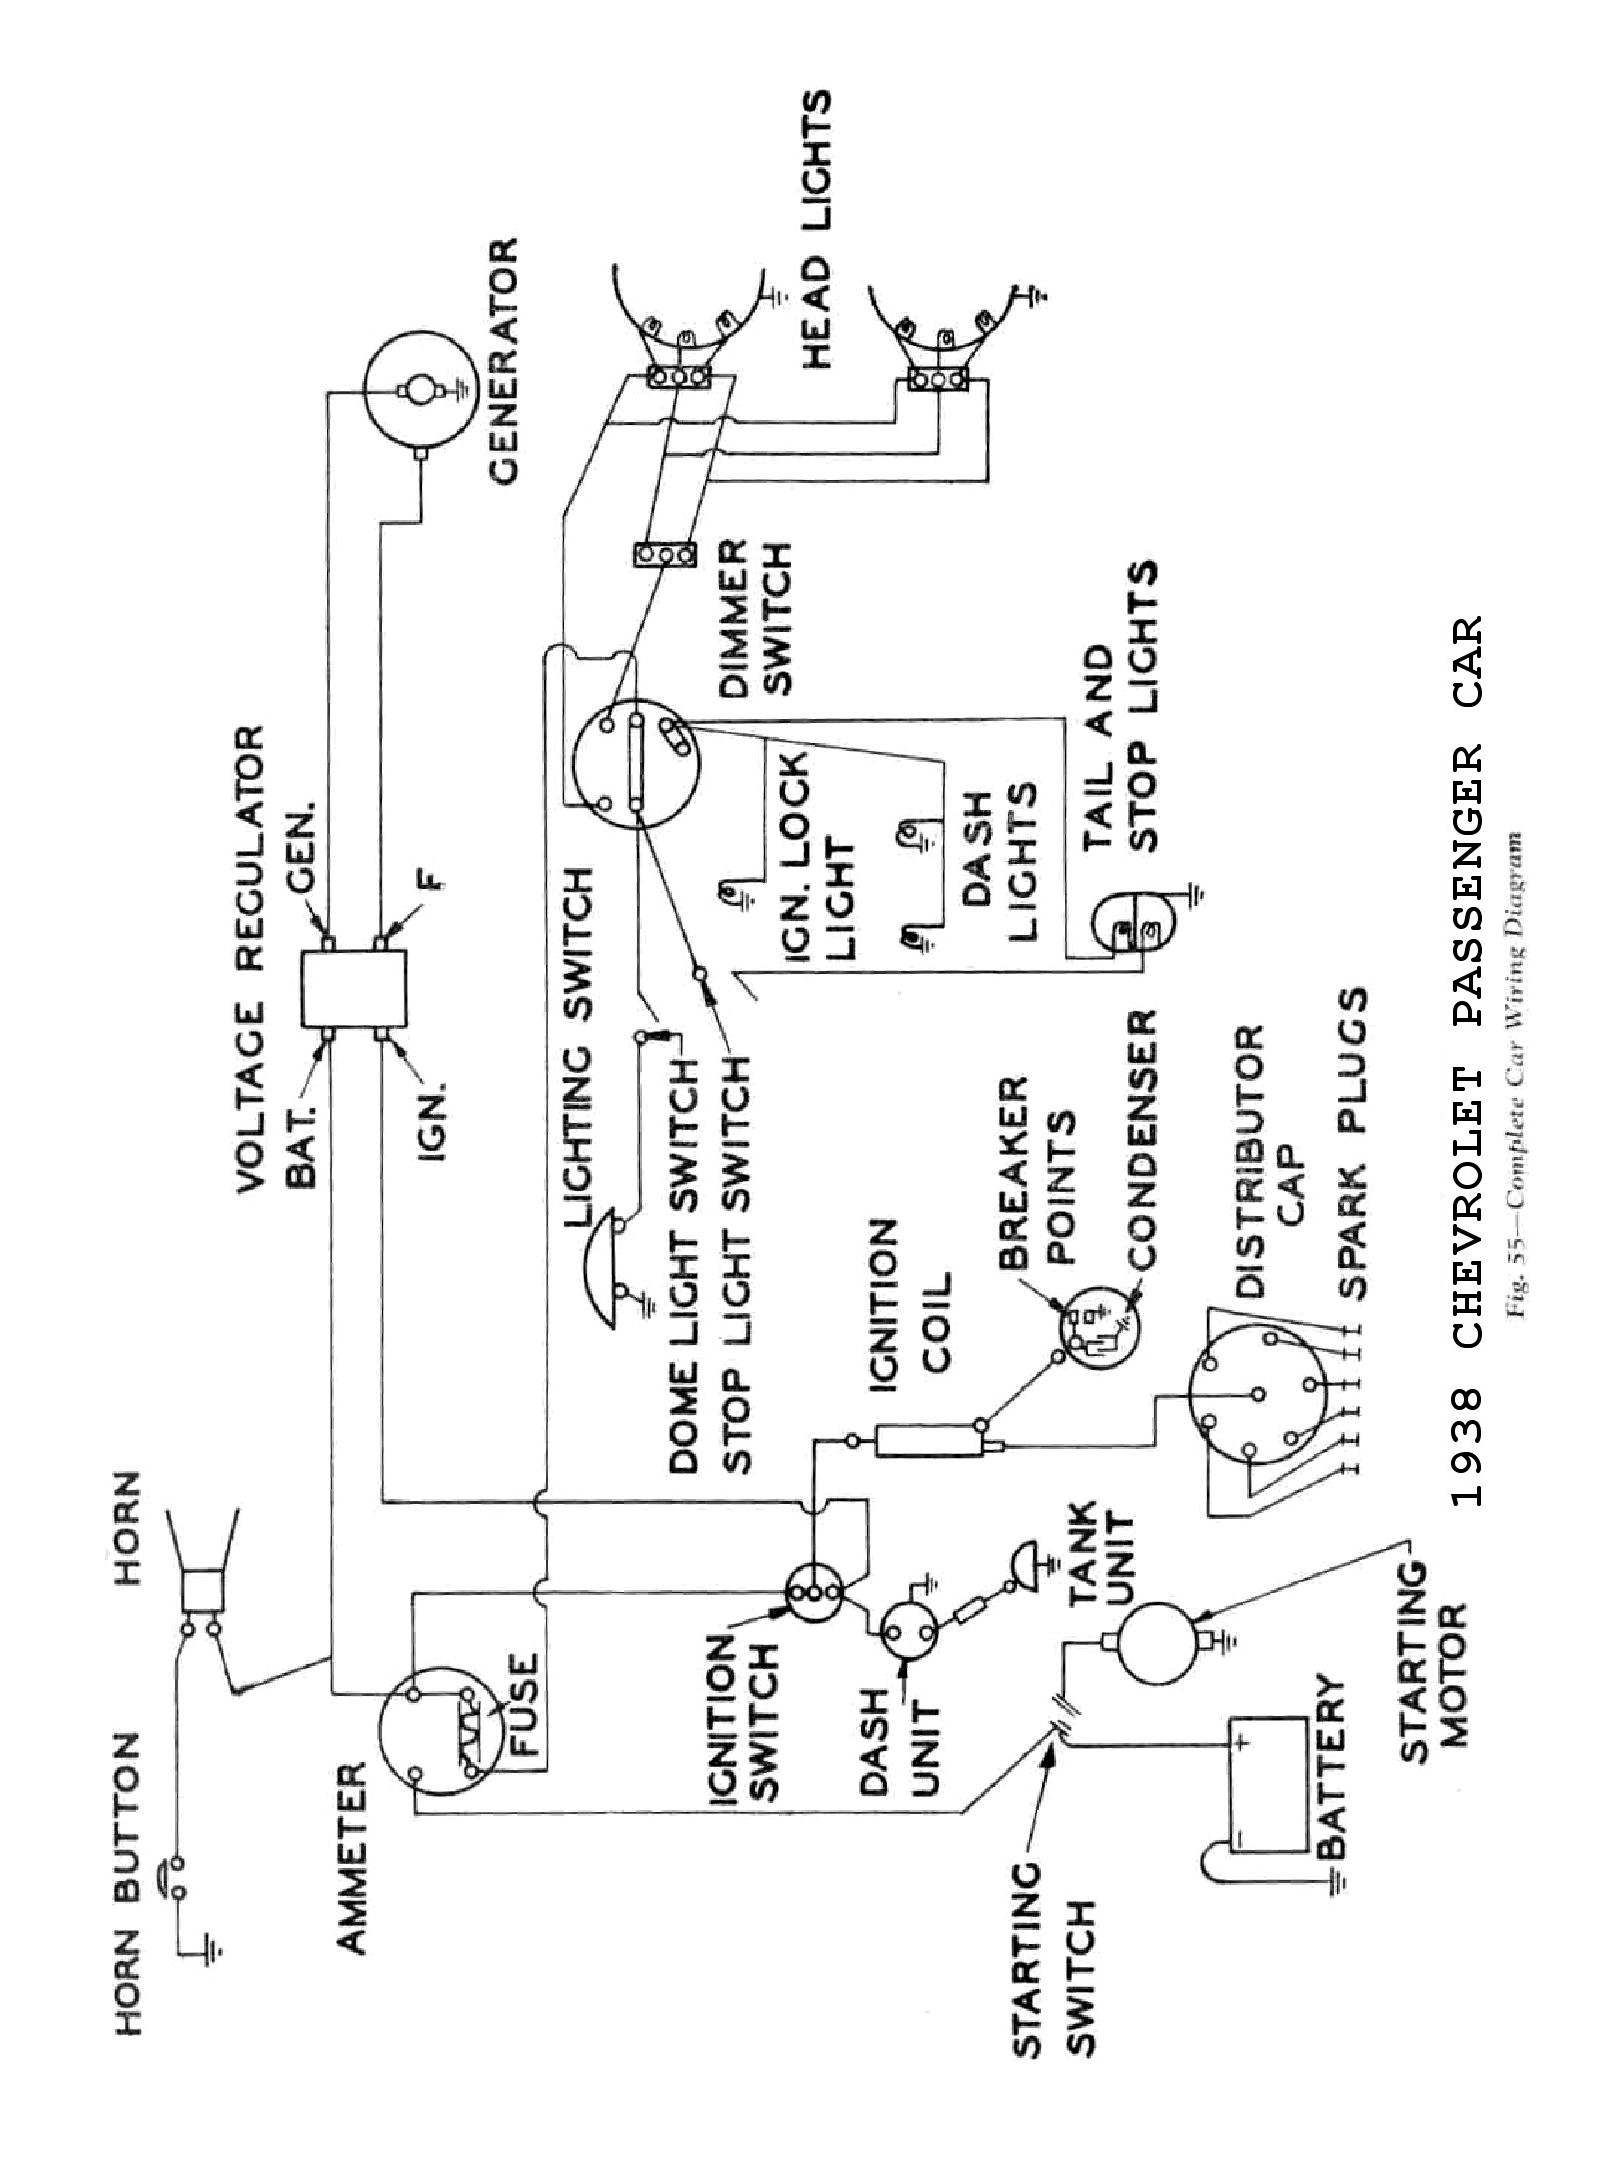 hight resolution of car dimmer switch wiring diagram chevy wiring diagrams